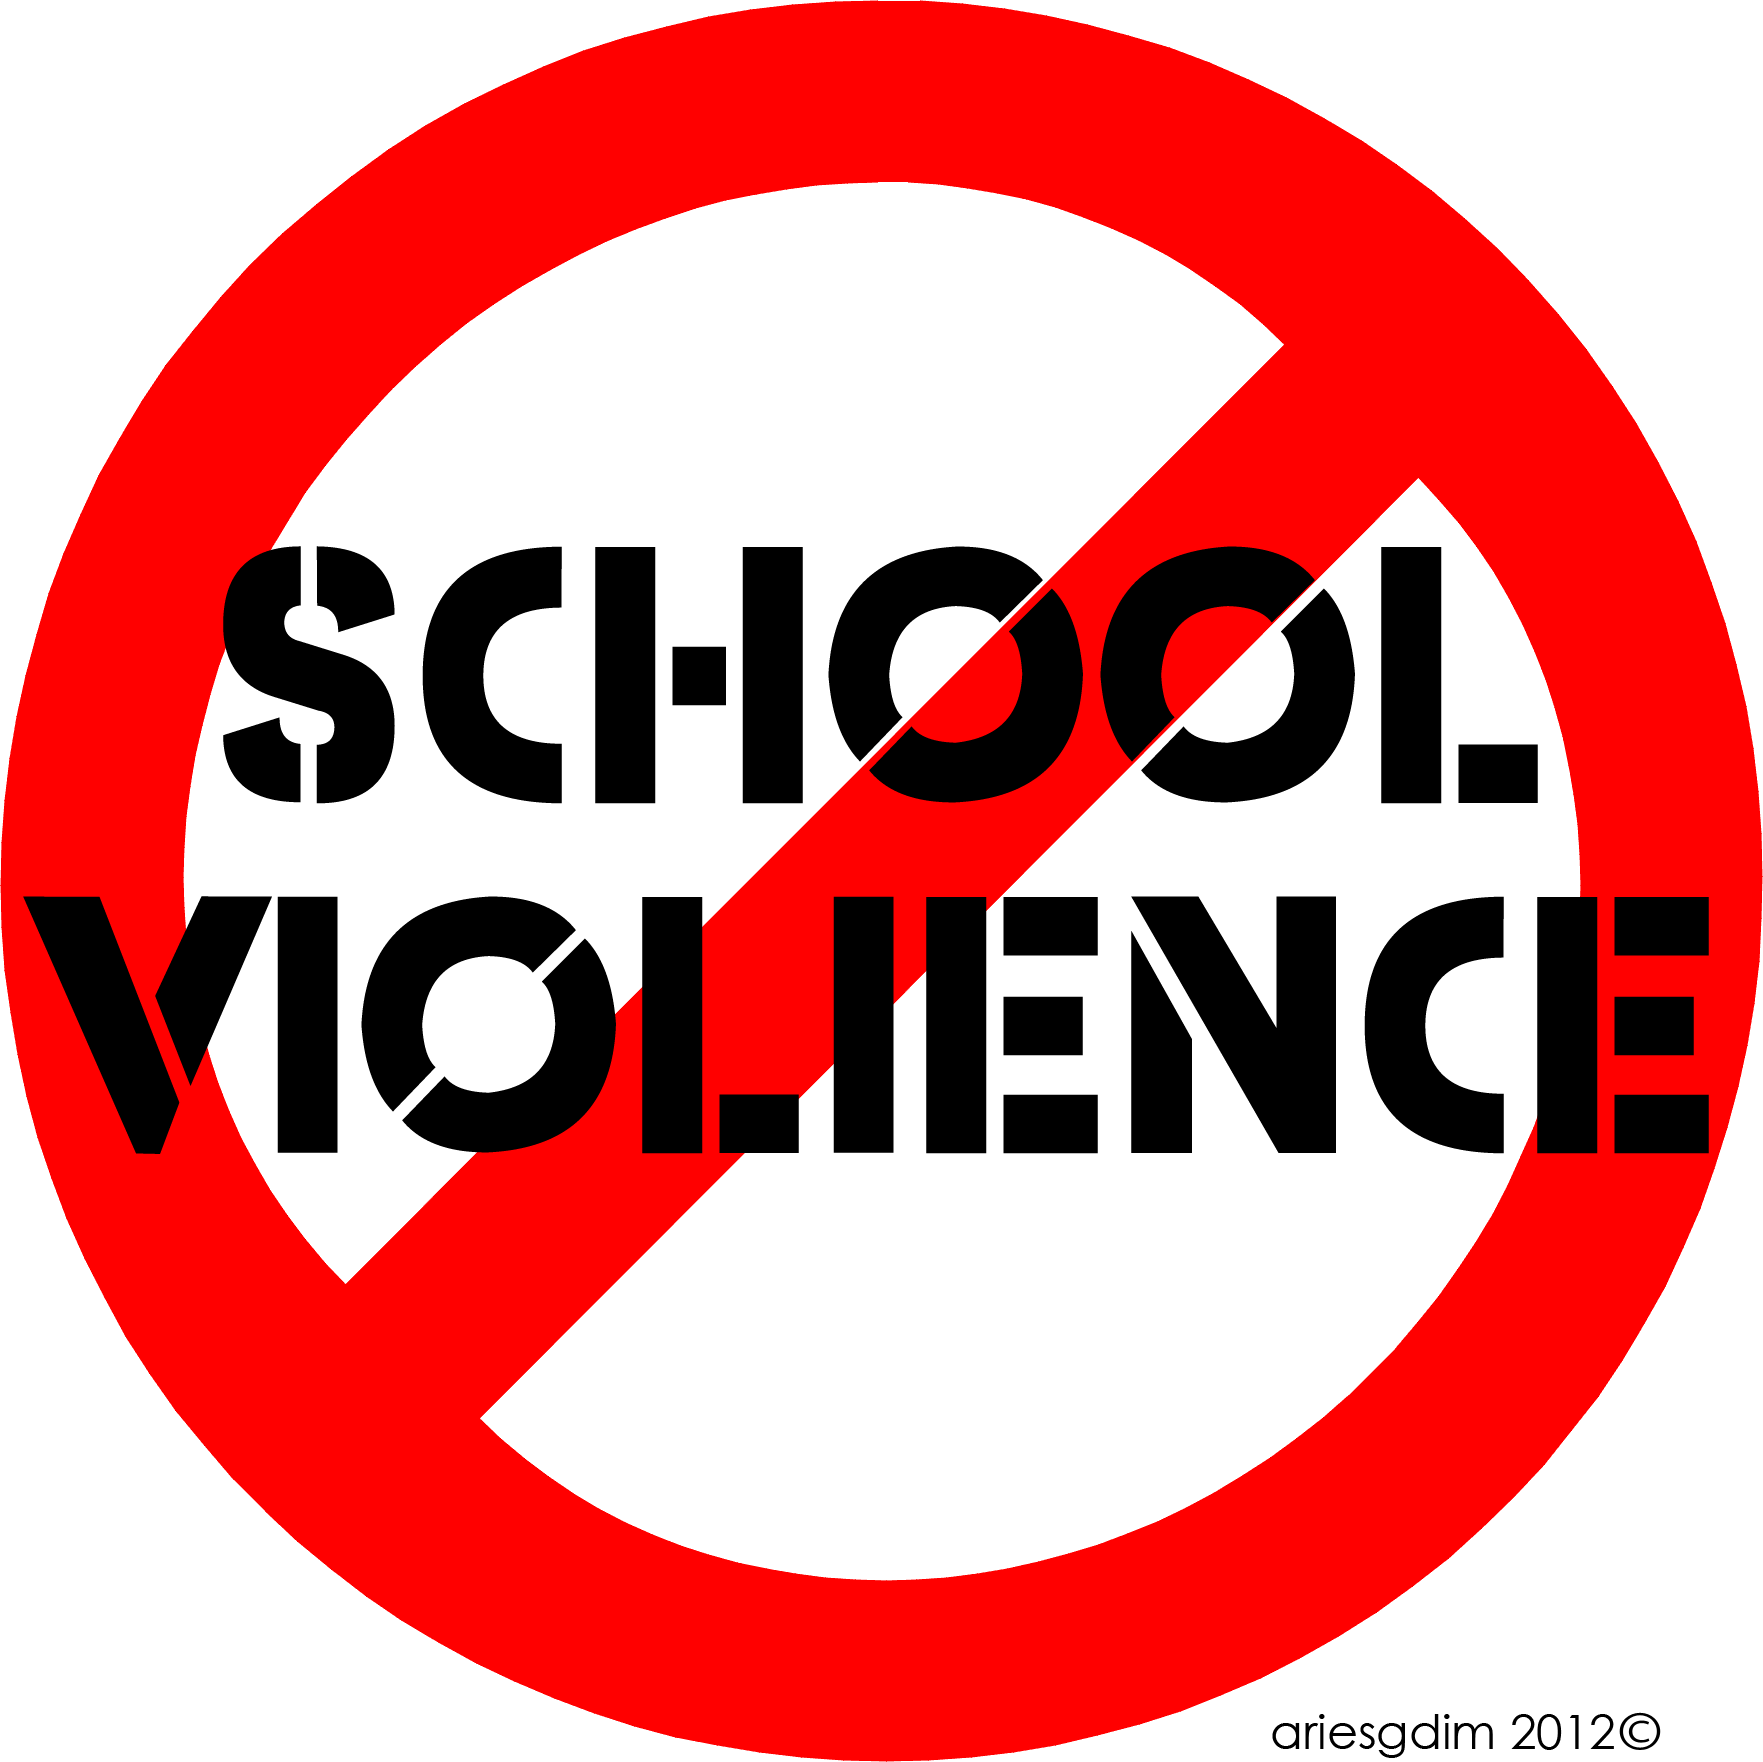 preventing the tragic events of school shootings Another tragic milestone: more than 200 school shootings more than 200 school shootings since a recent analysis by researchers at louisiana state university and the university of missouri on fatal shootings at high schools found that events involving a homicide reduced student enrollment.